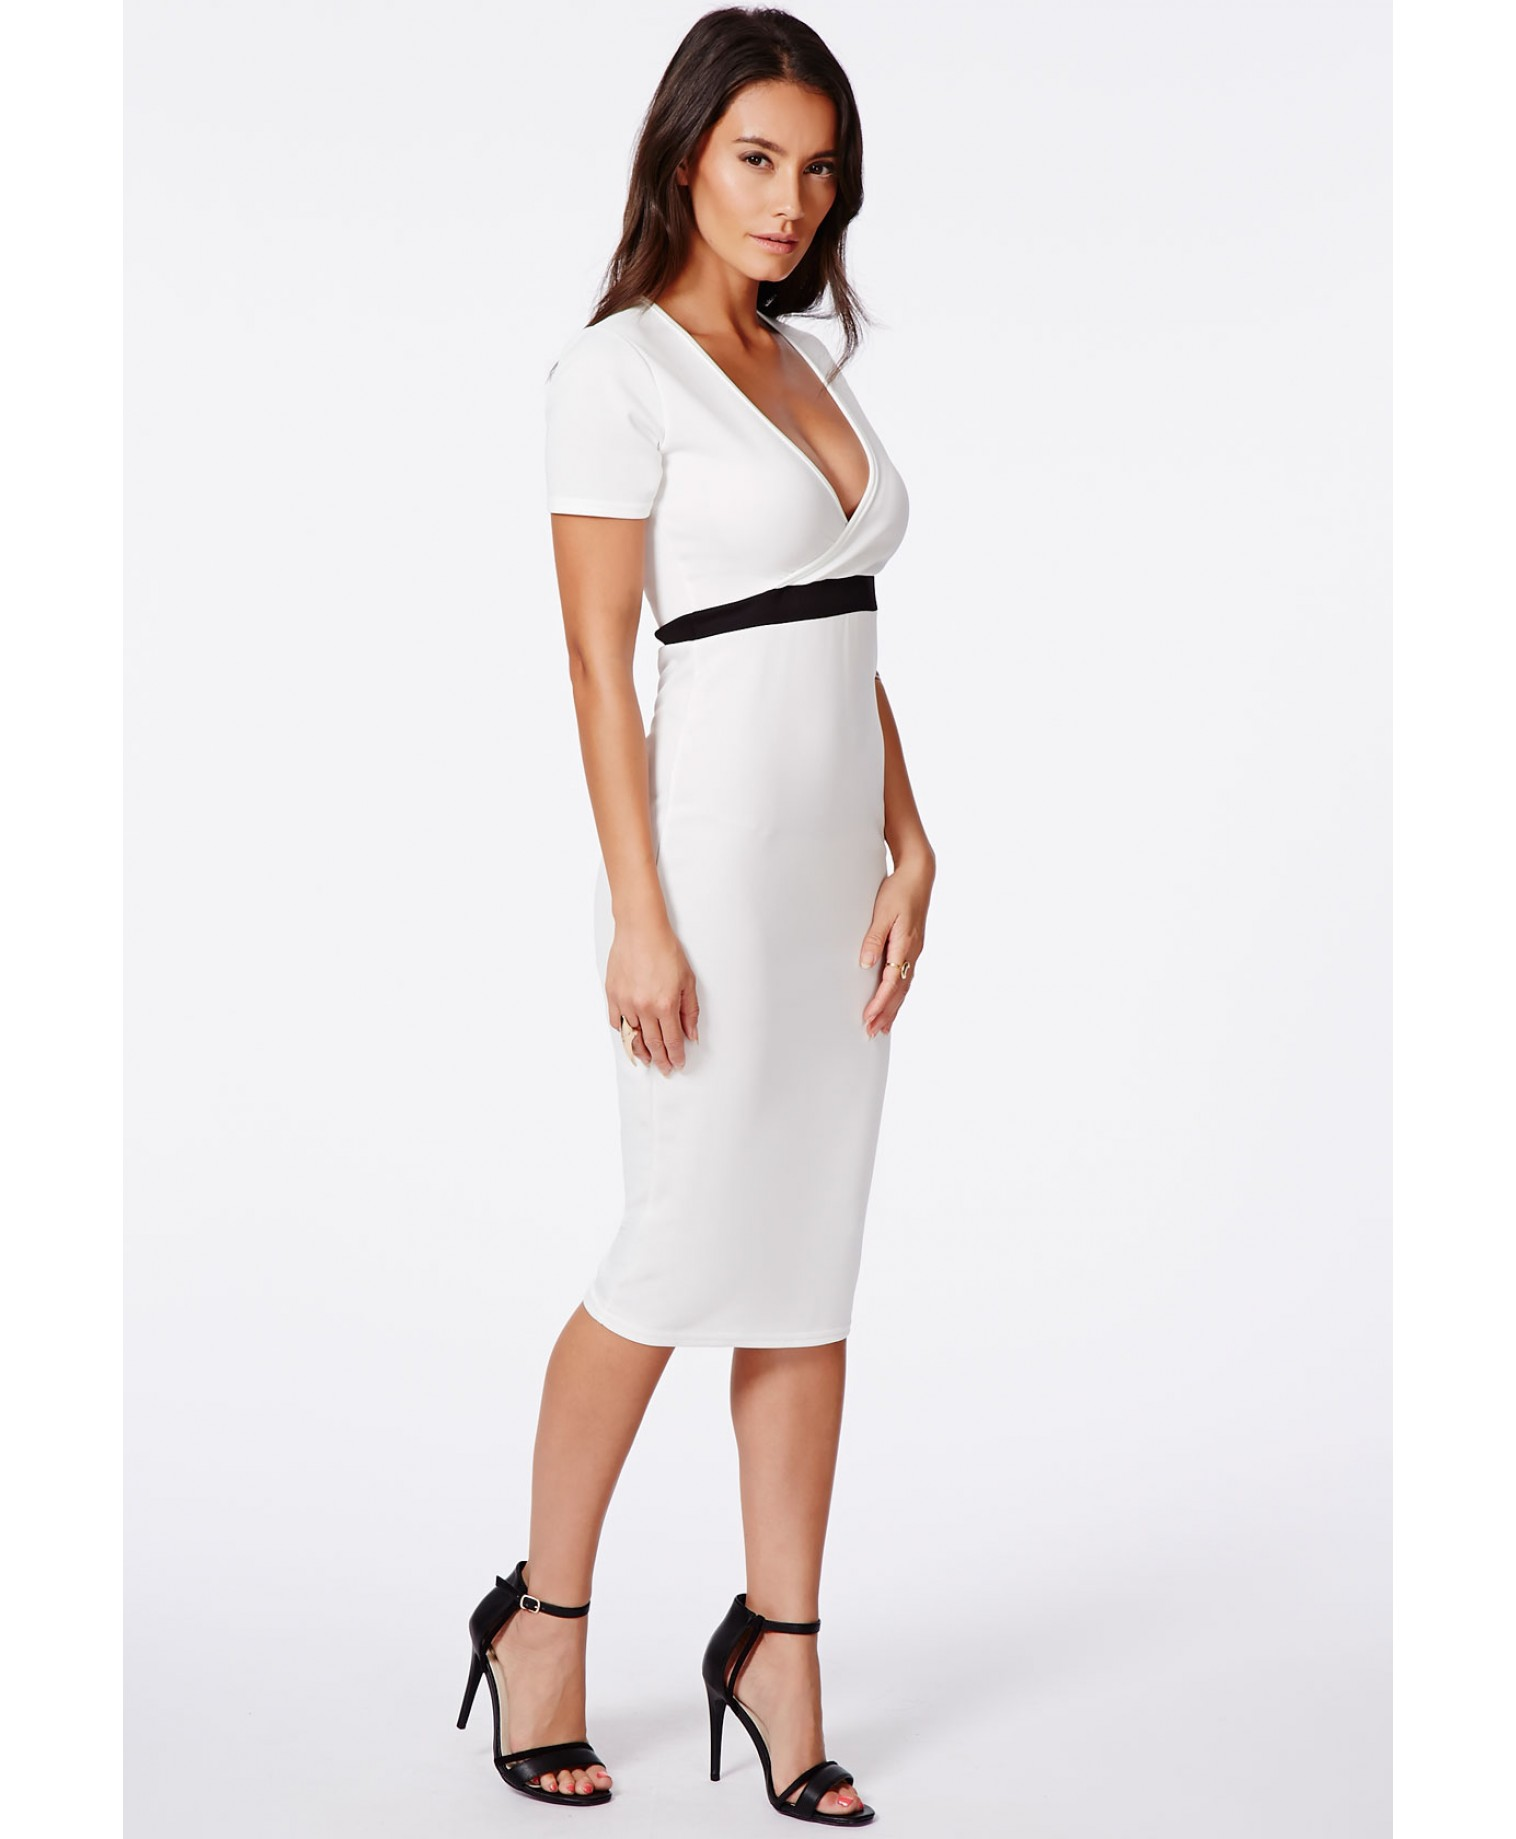 Verda wrap over monochrome contrast midi dress 3